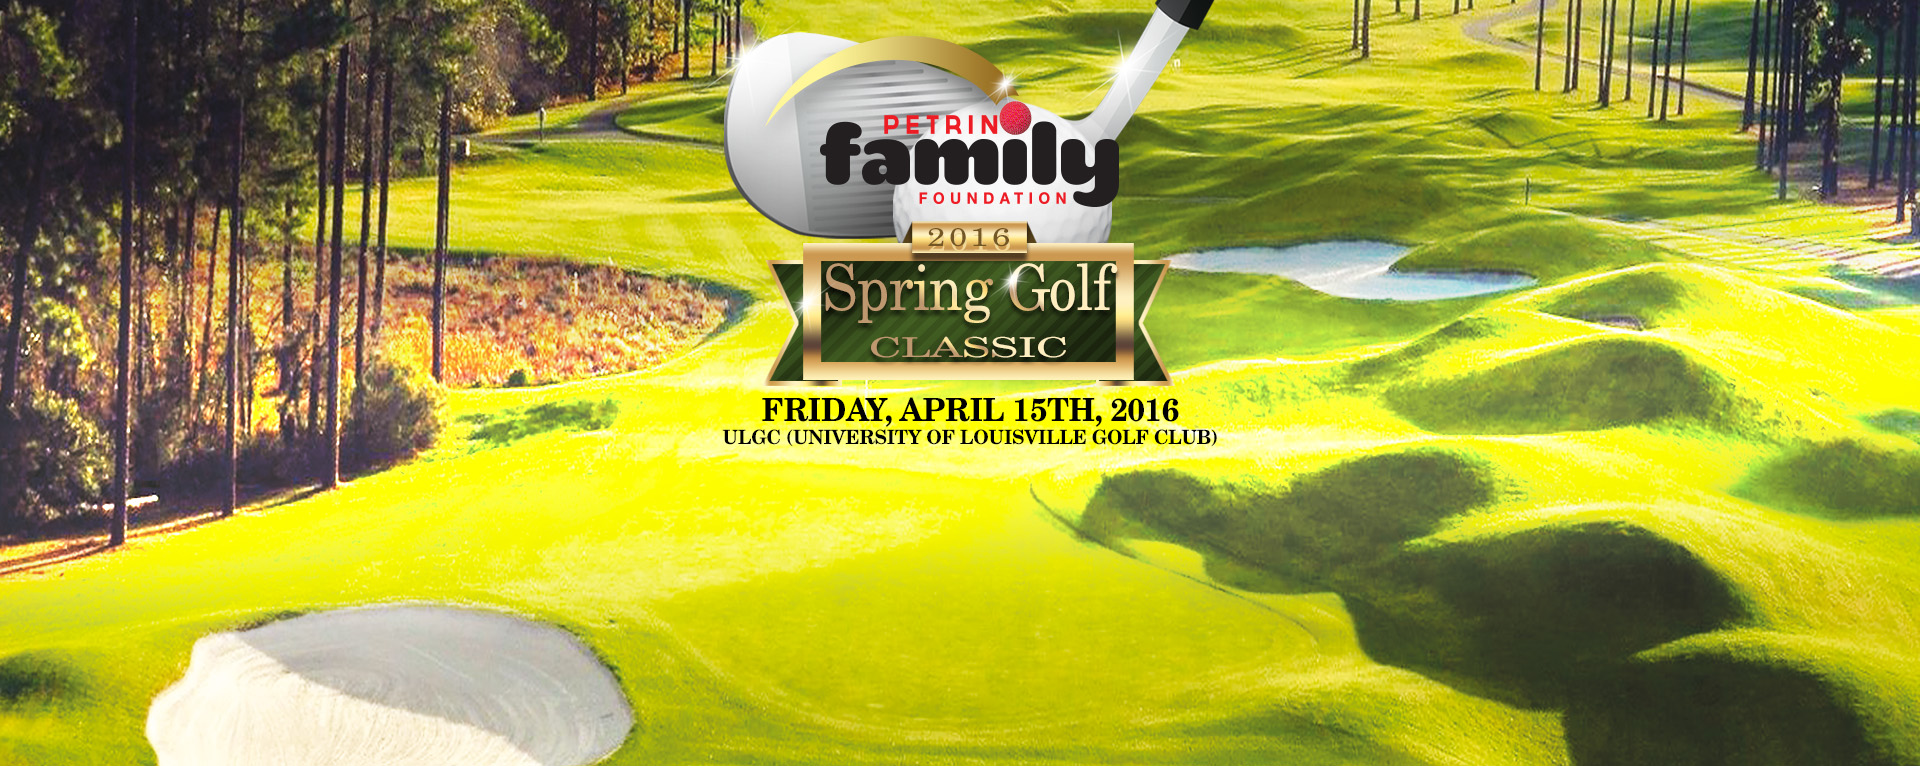 FPSS-2016-Spring-Golf-Classic4